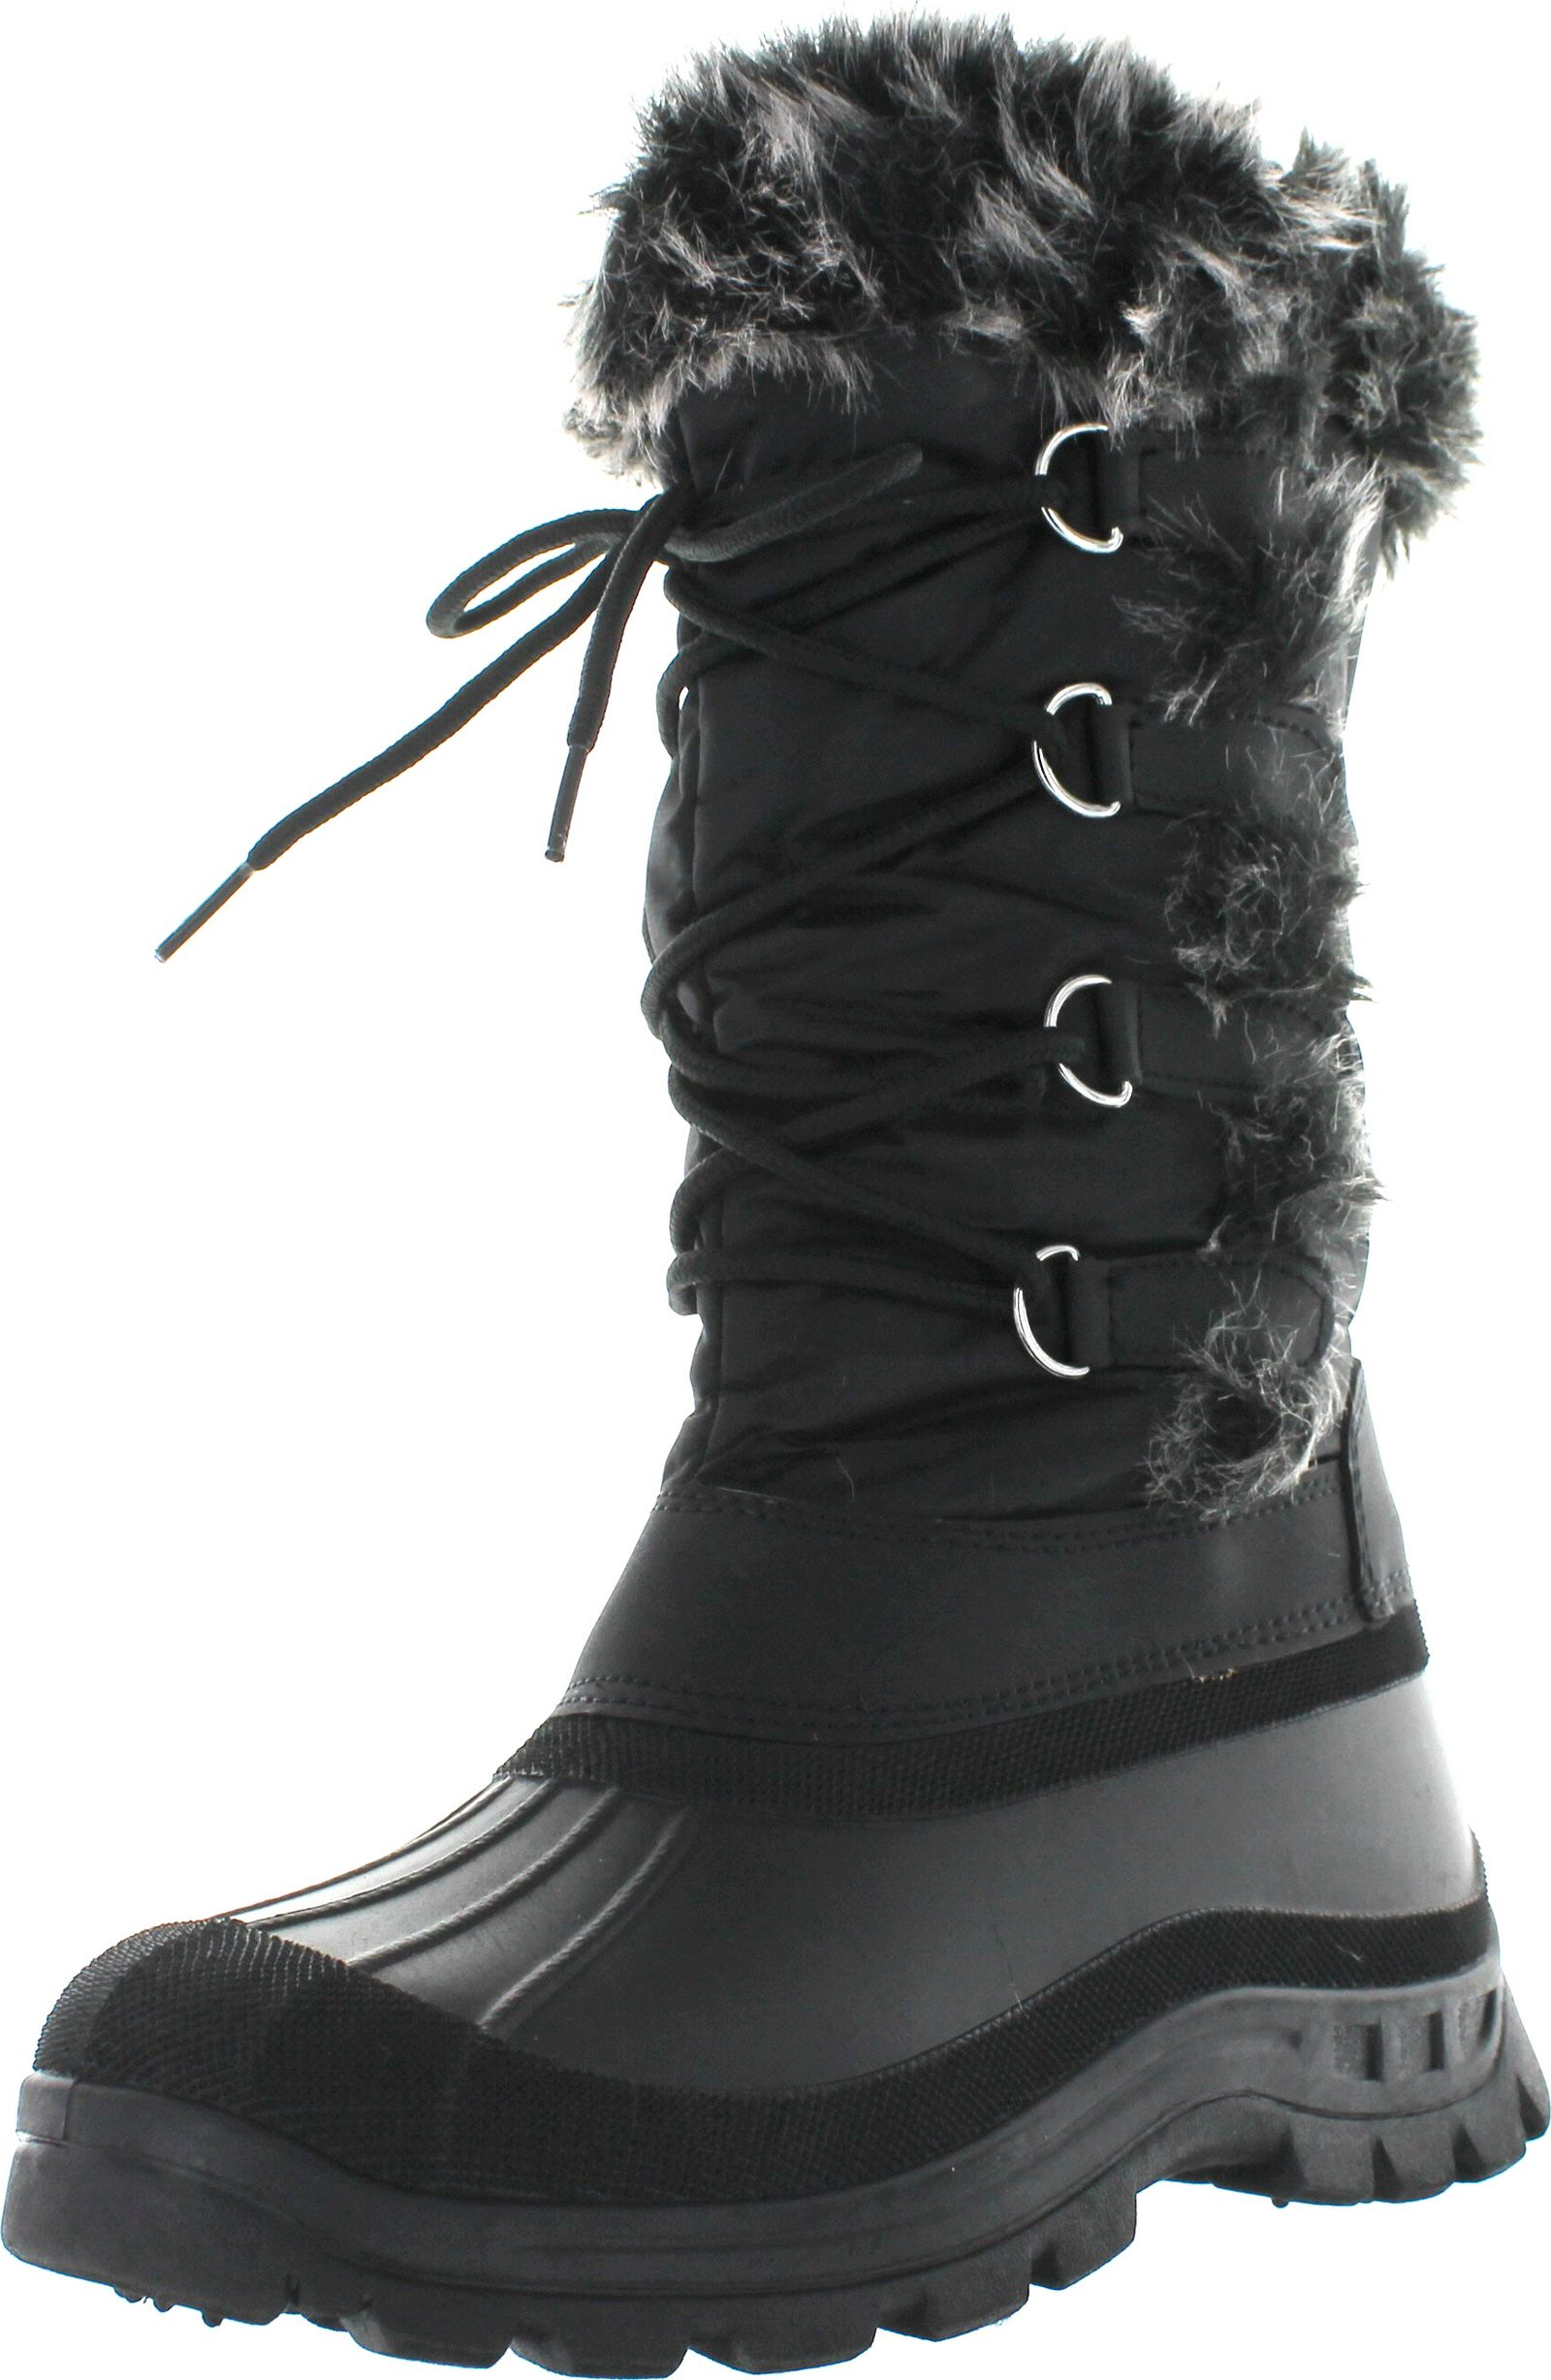 Brilliant WomensHighTopAnkleBootsWedgeHeelLadiesTrainerSneakerWinter